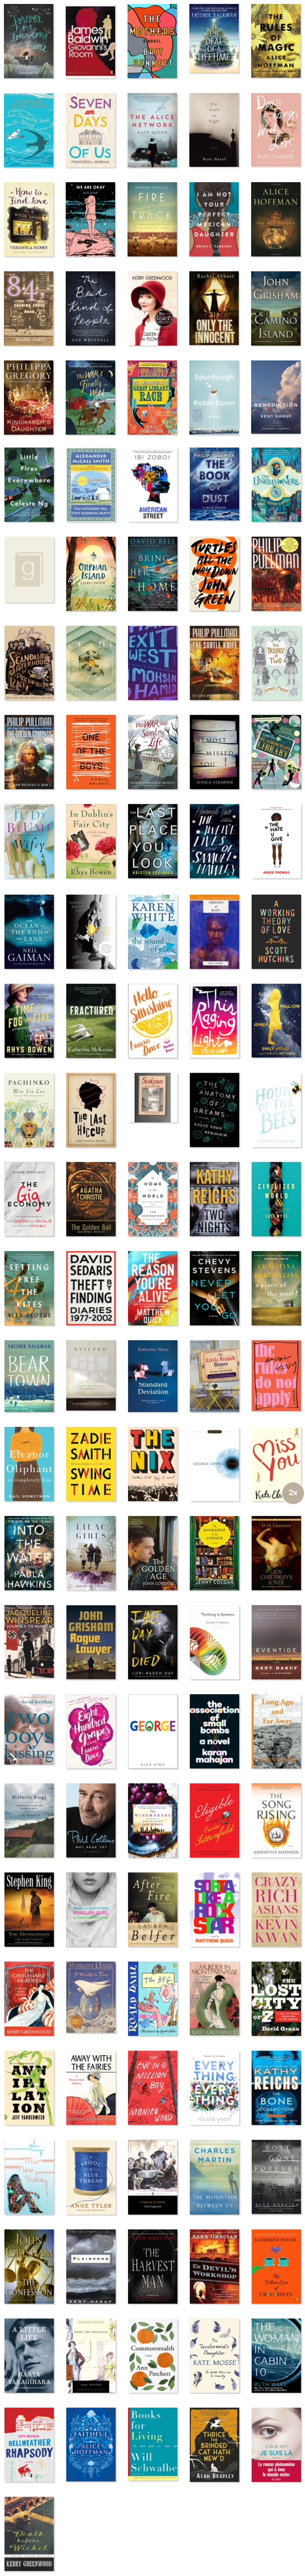 During 2017, I read 142 books.